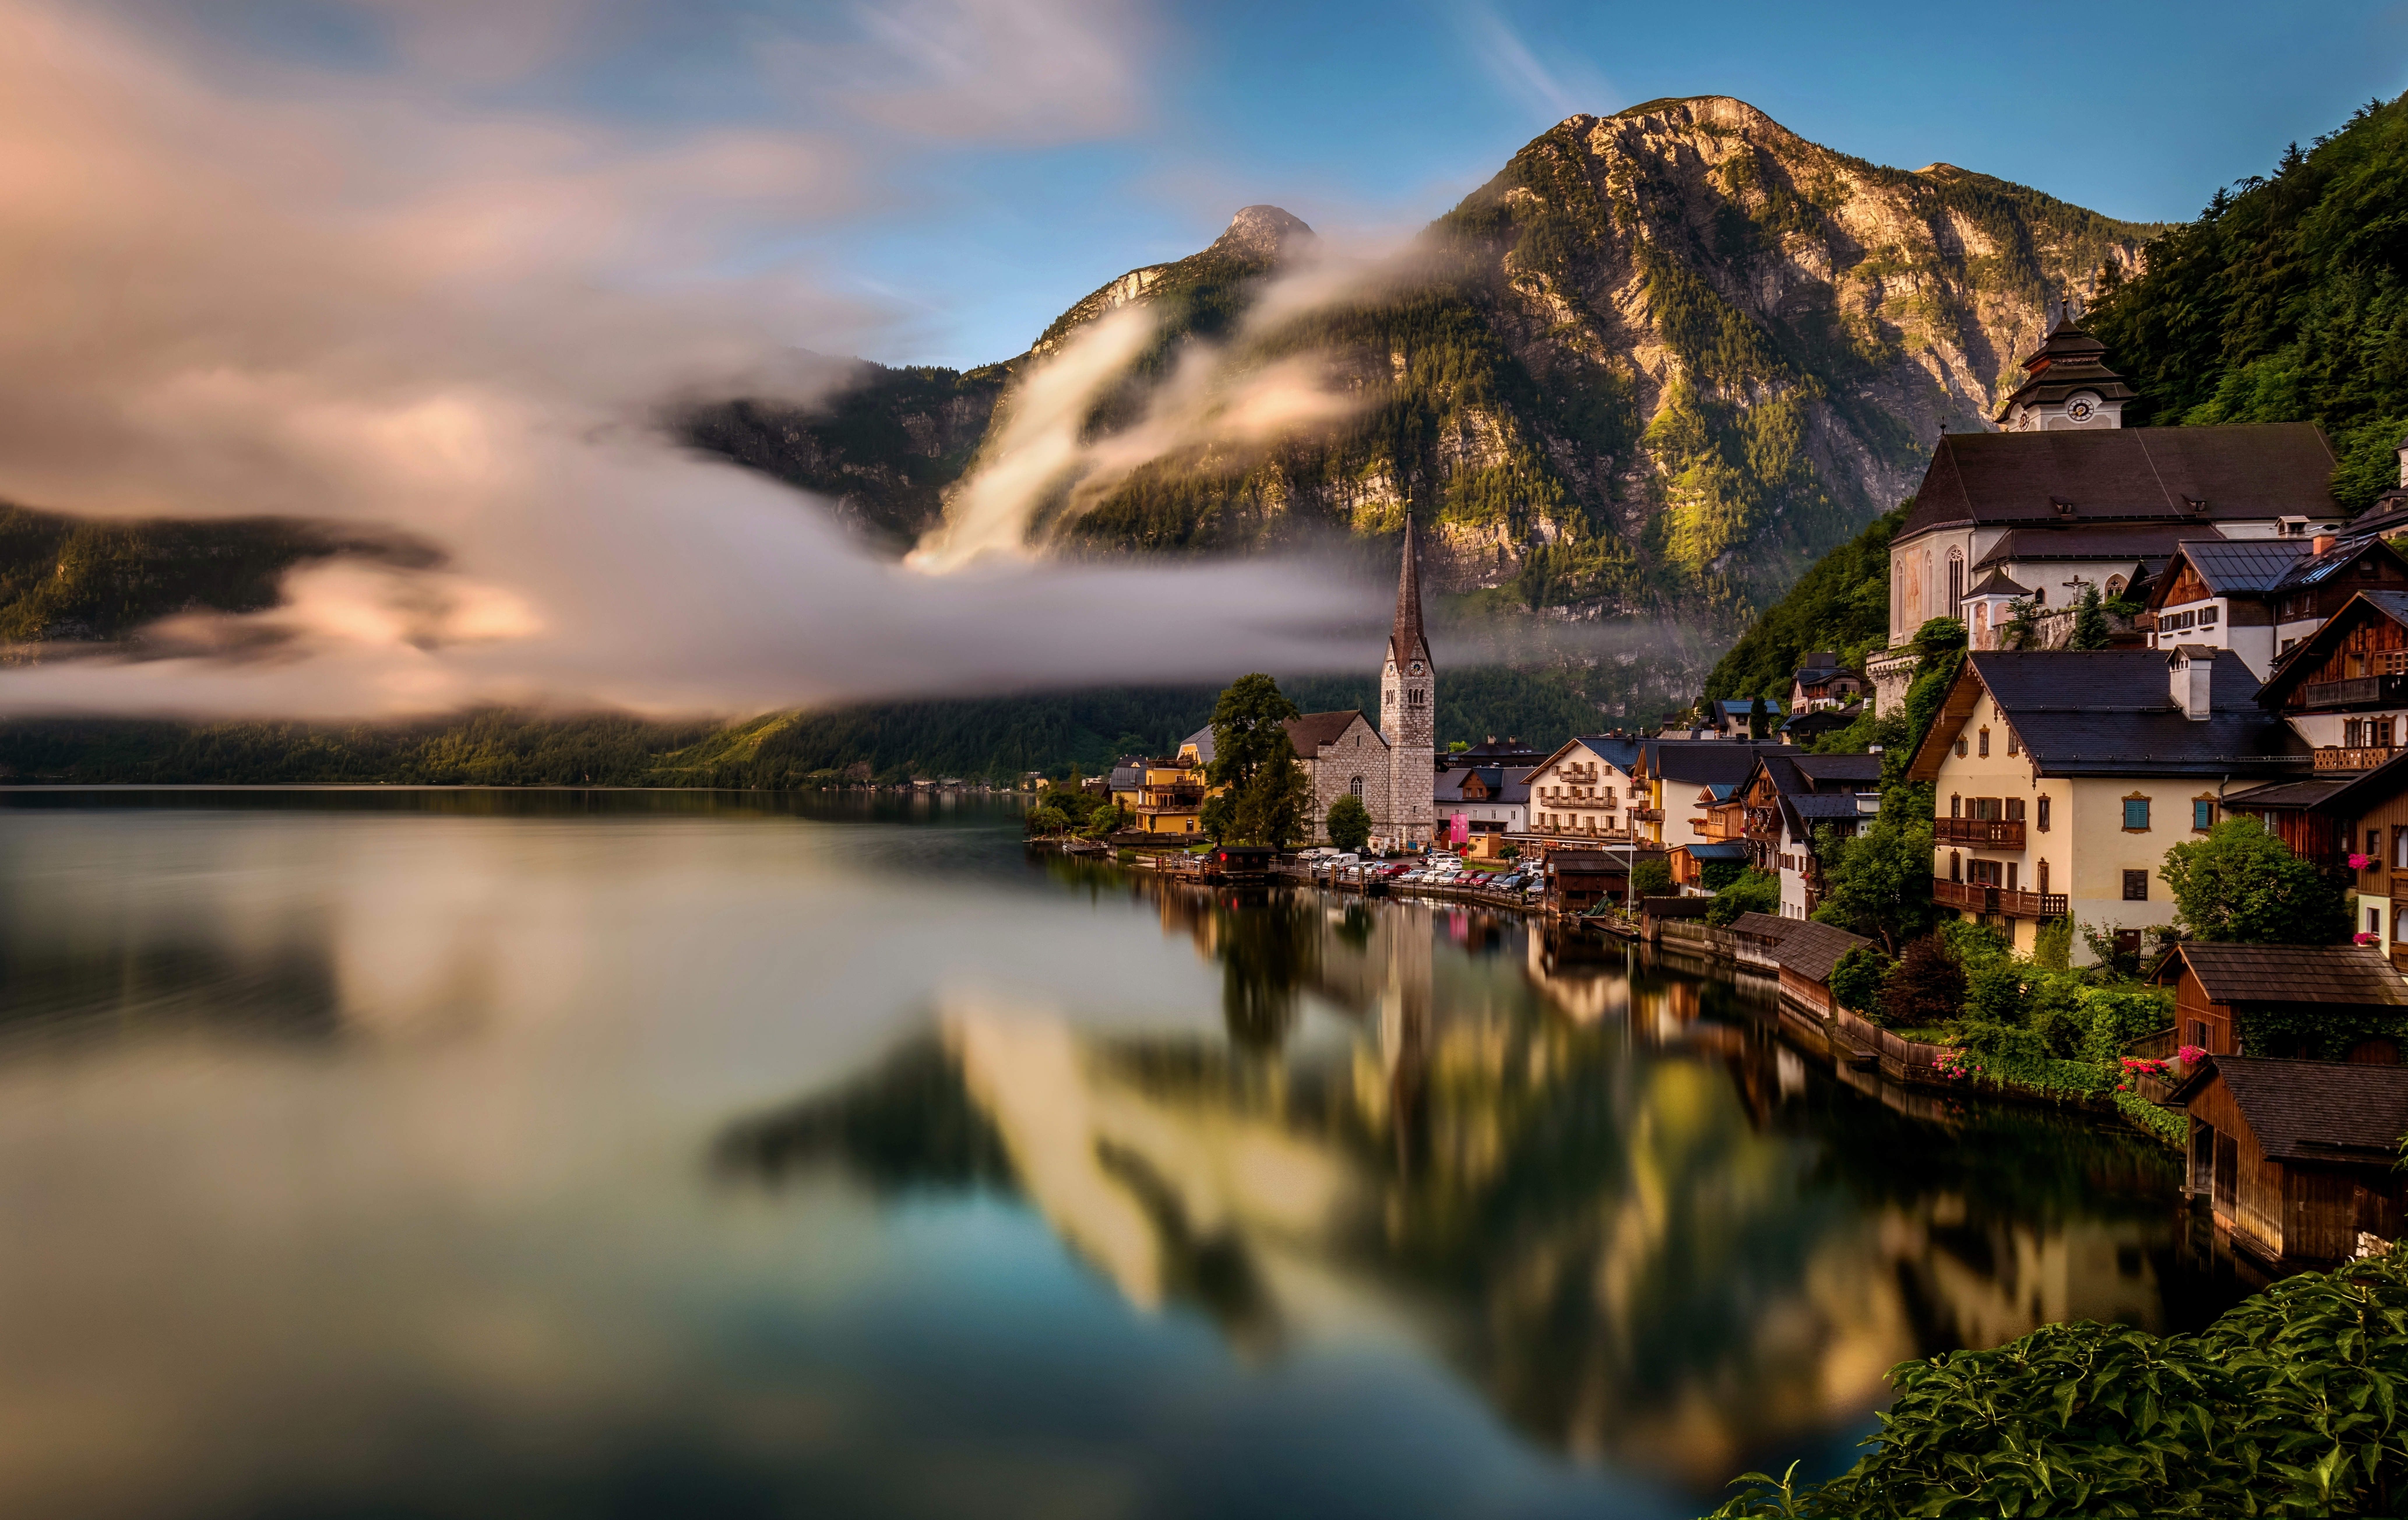 Haus am see wallpaper  Hallstatt 8k Ultra HD Wallpaper and Hintergrund | 8264x5217 | ID ...